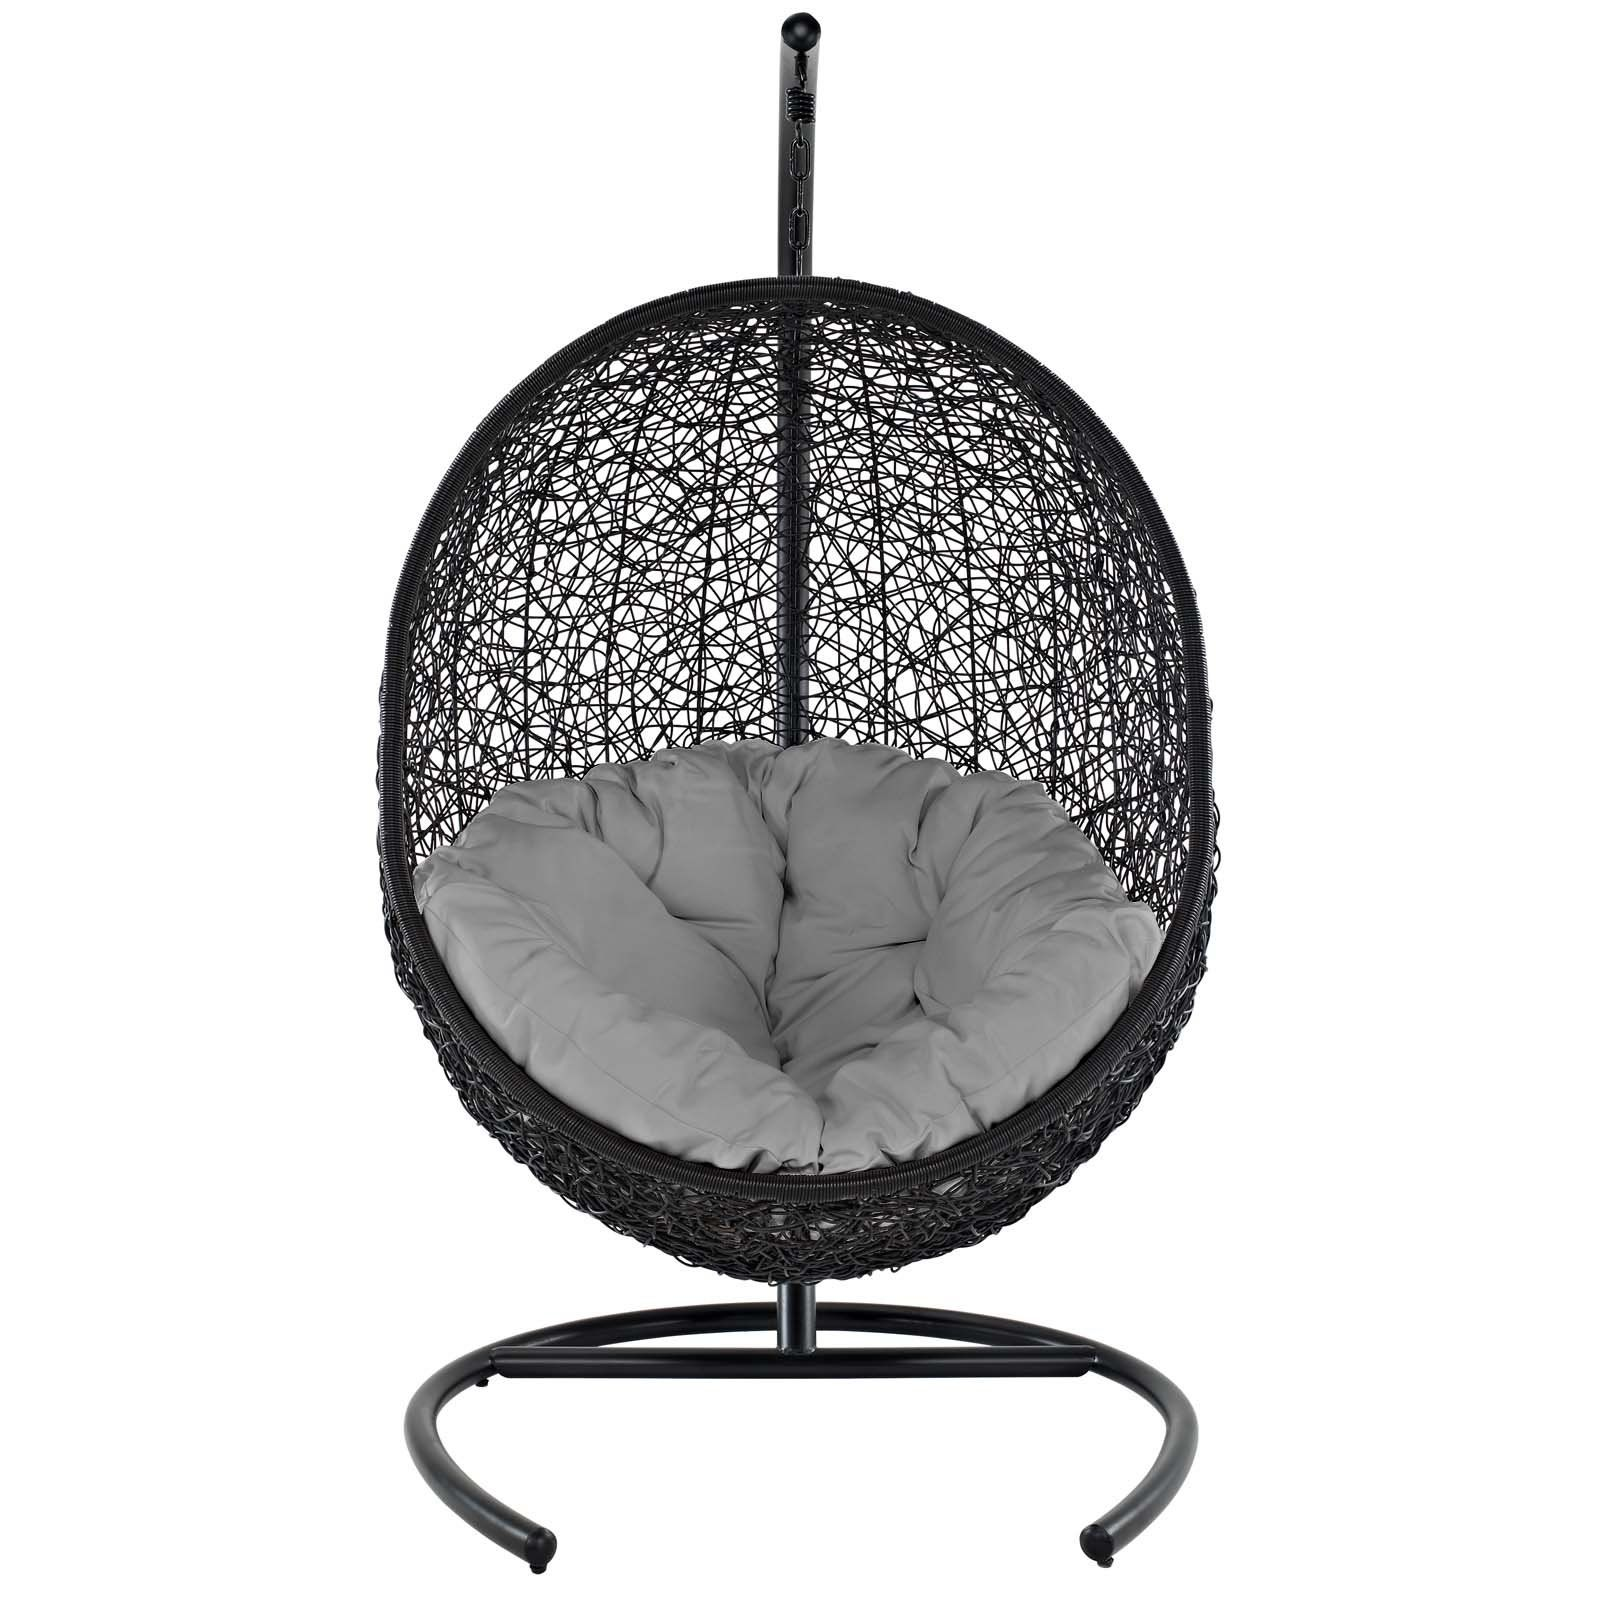 Modway furniture modern encase swing outdoor patio lounge chair